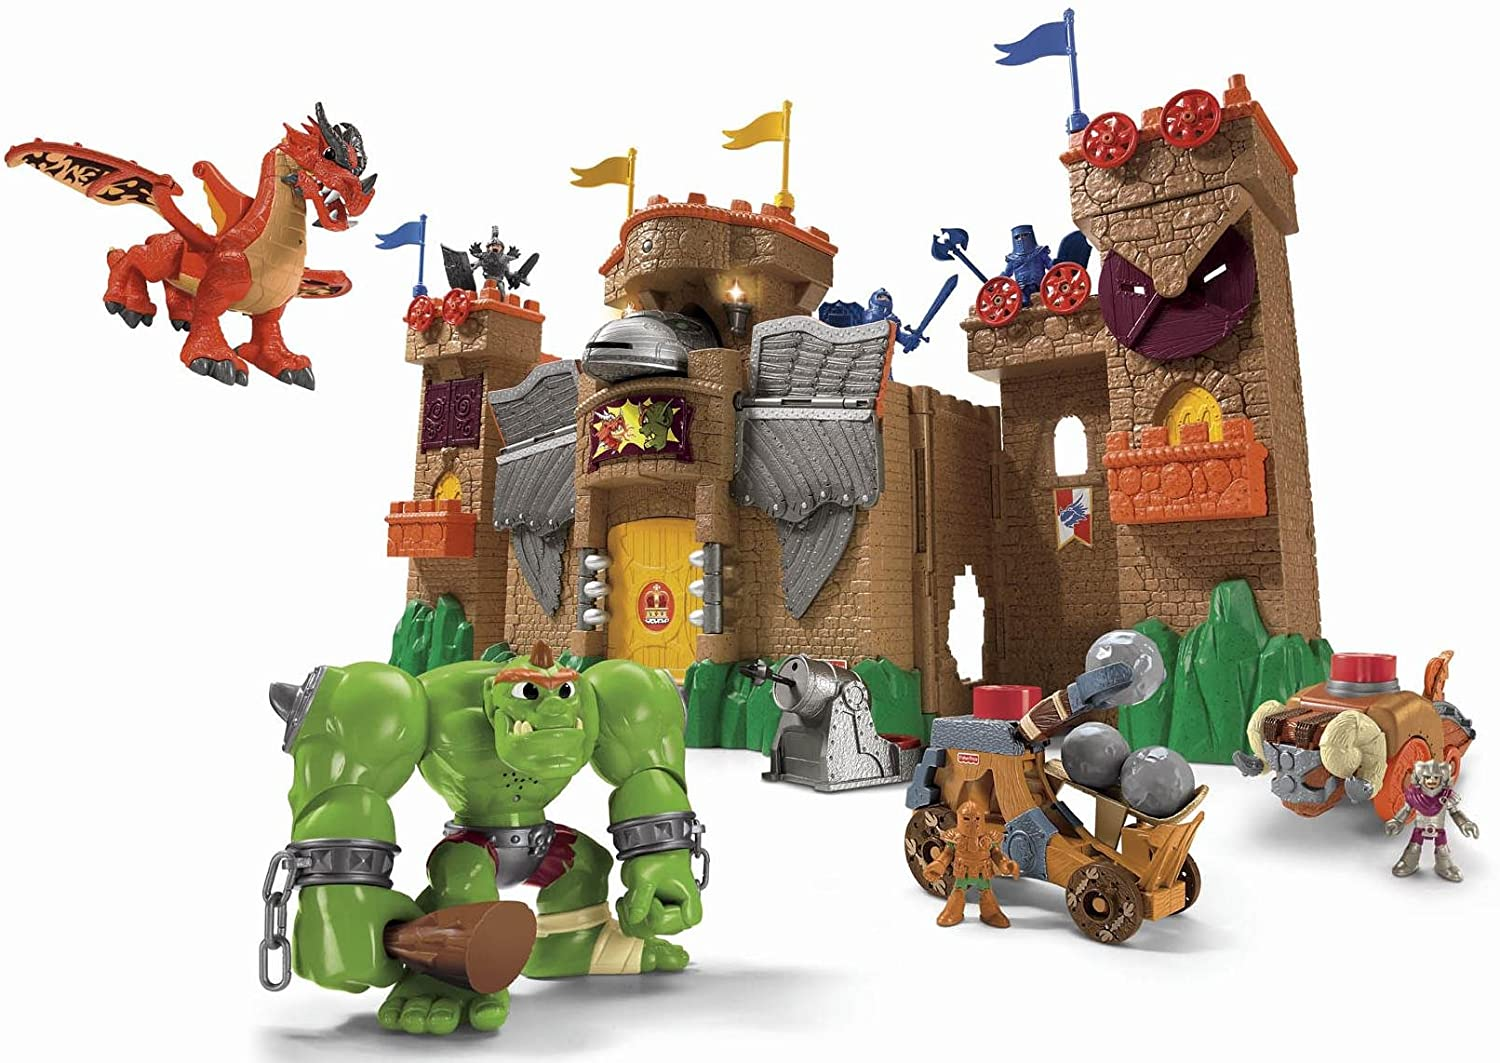 Toy Castles For Toddler Boys : Fisher price imaginext eagle talon castle review bucket